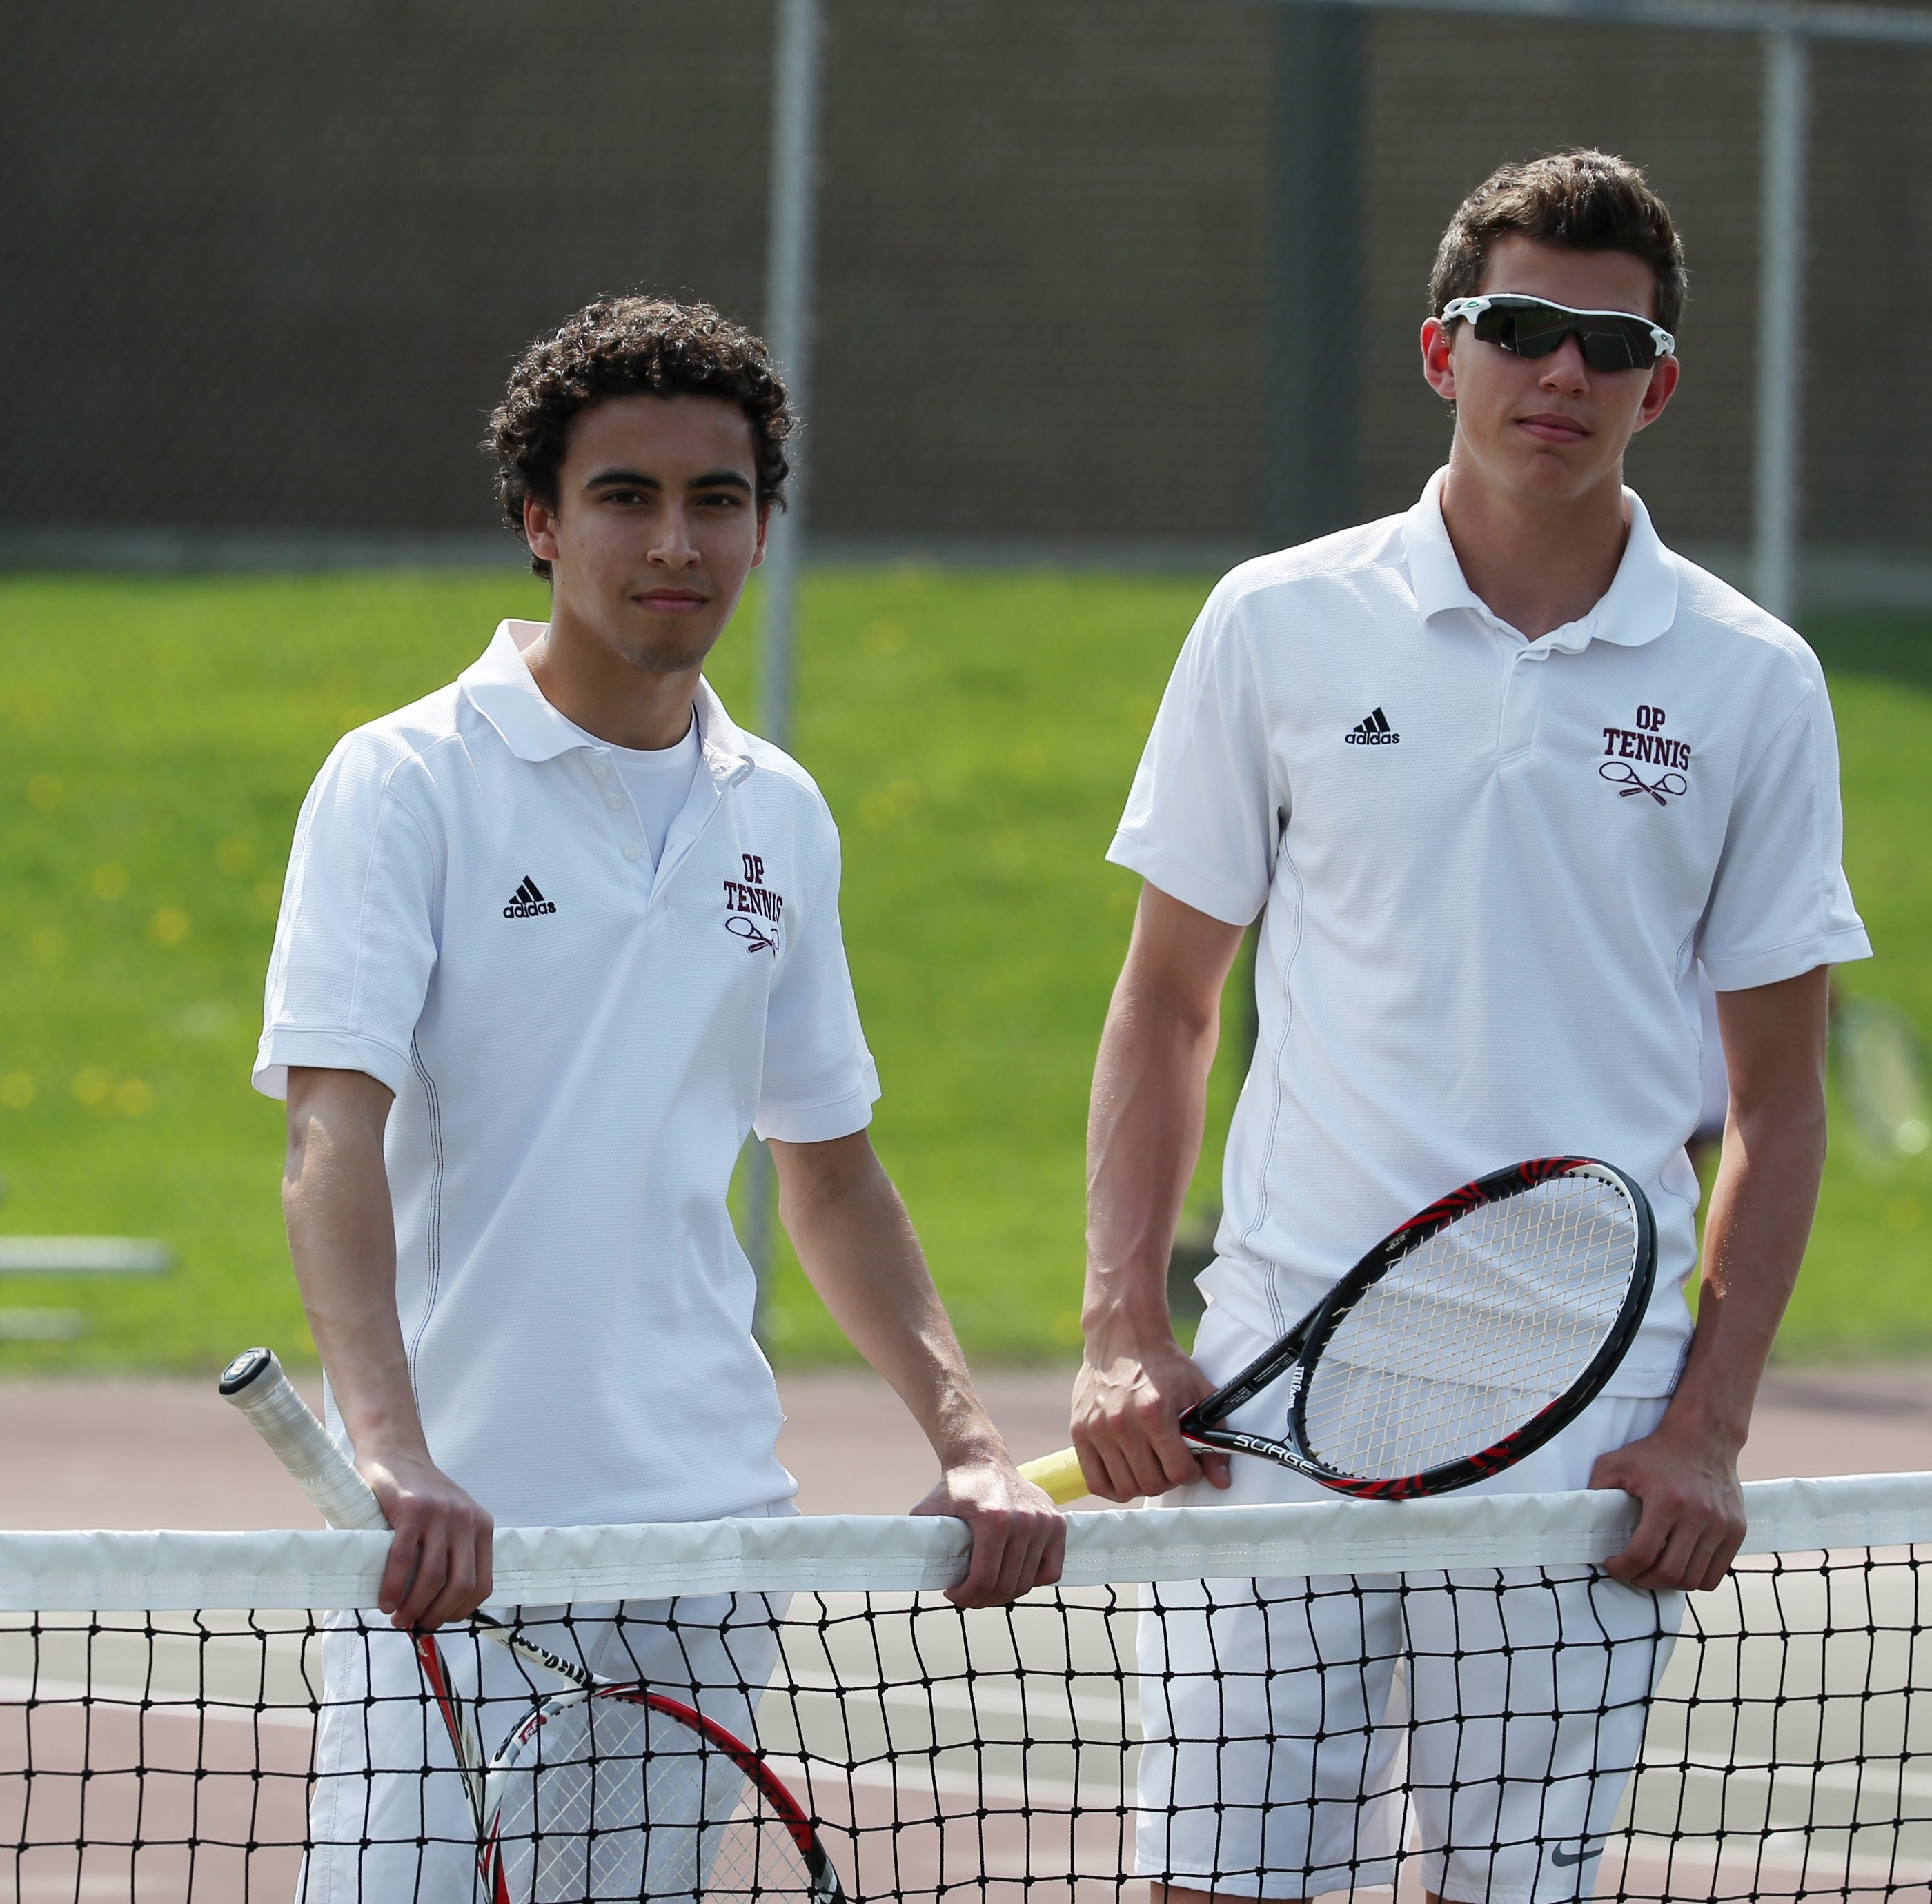 Zander Korach and Dan Freilicher missed out on a trip to the state tournament last season, falling to Bryce and Jack Payne of Panama. They have set their sights on reaching states this season.